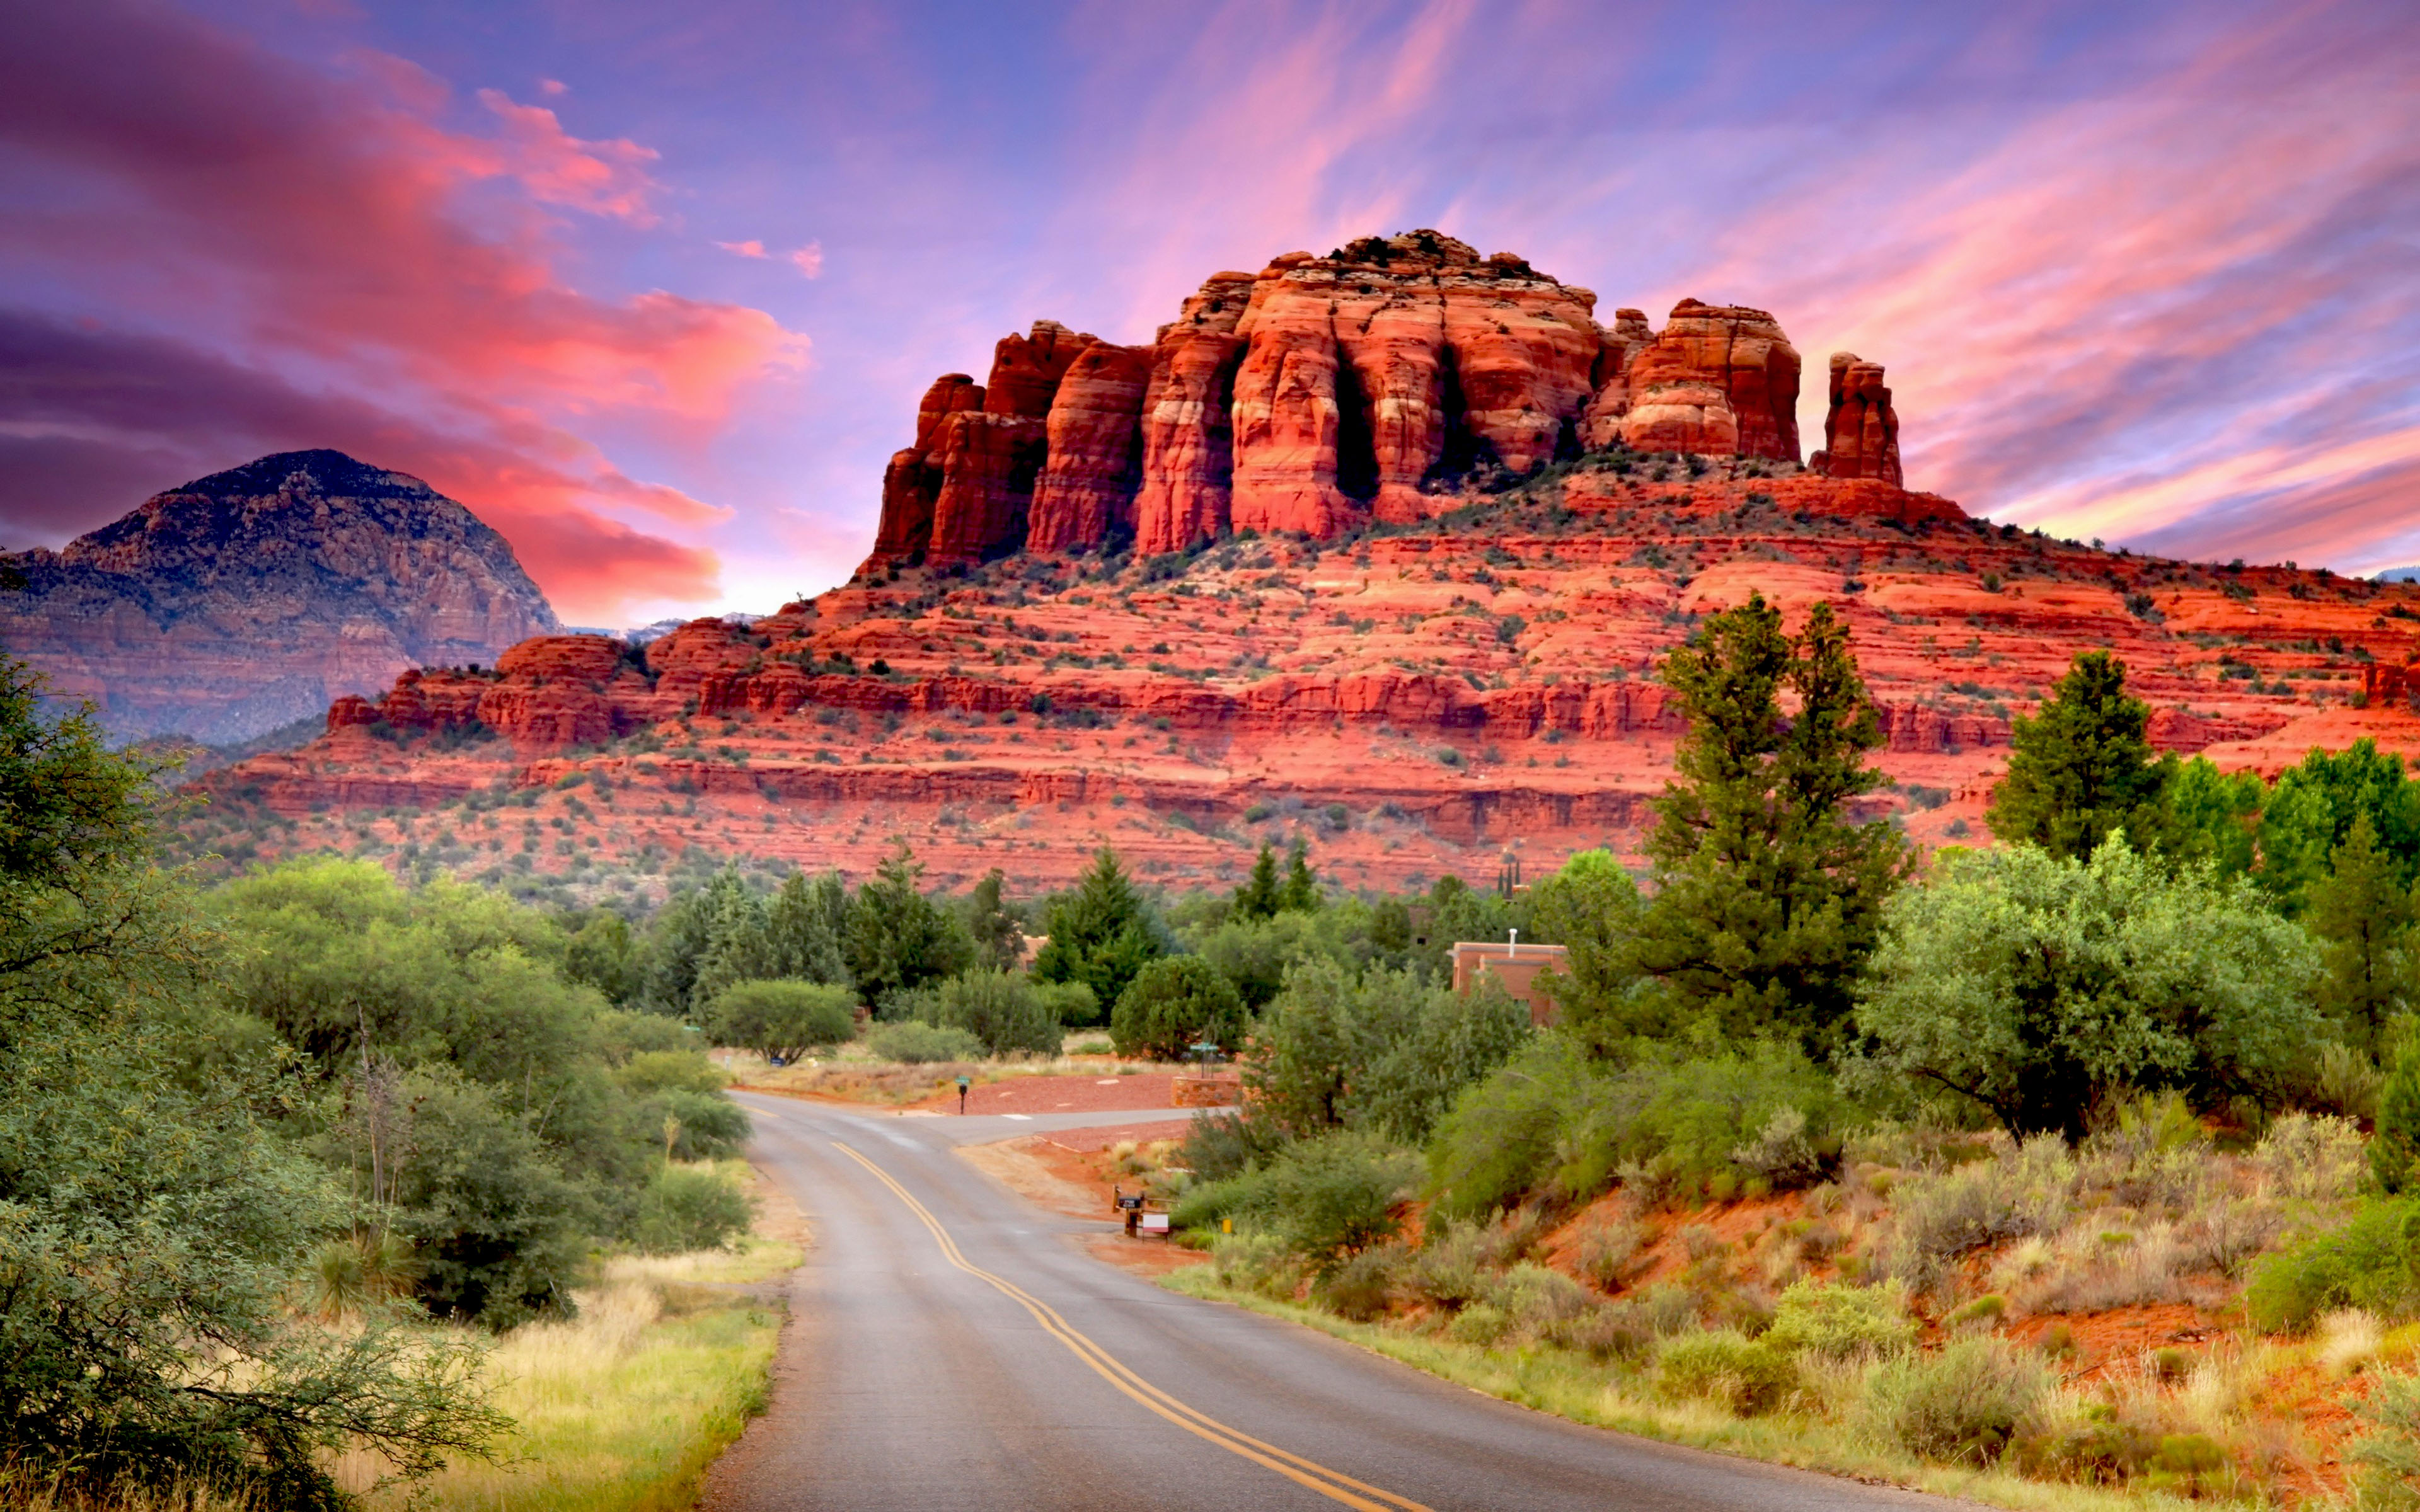 Road To Canyon In Arizona 4k Ultra Hd Wallpaper Background